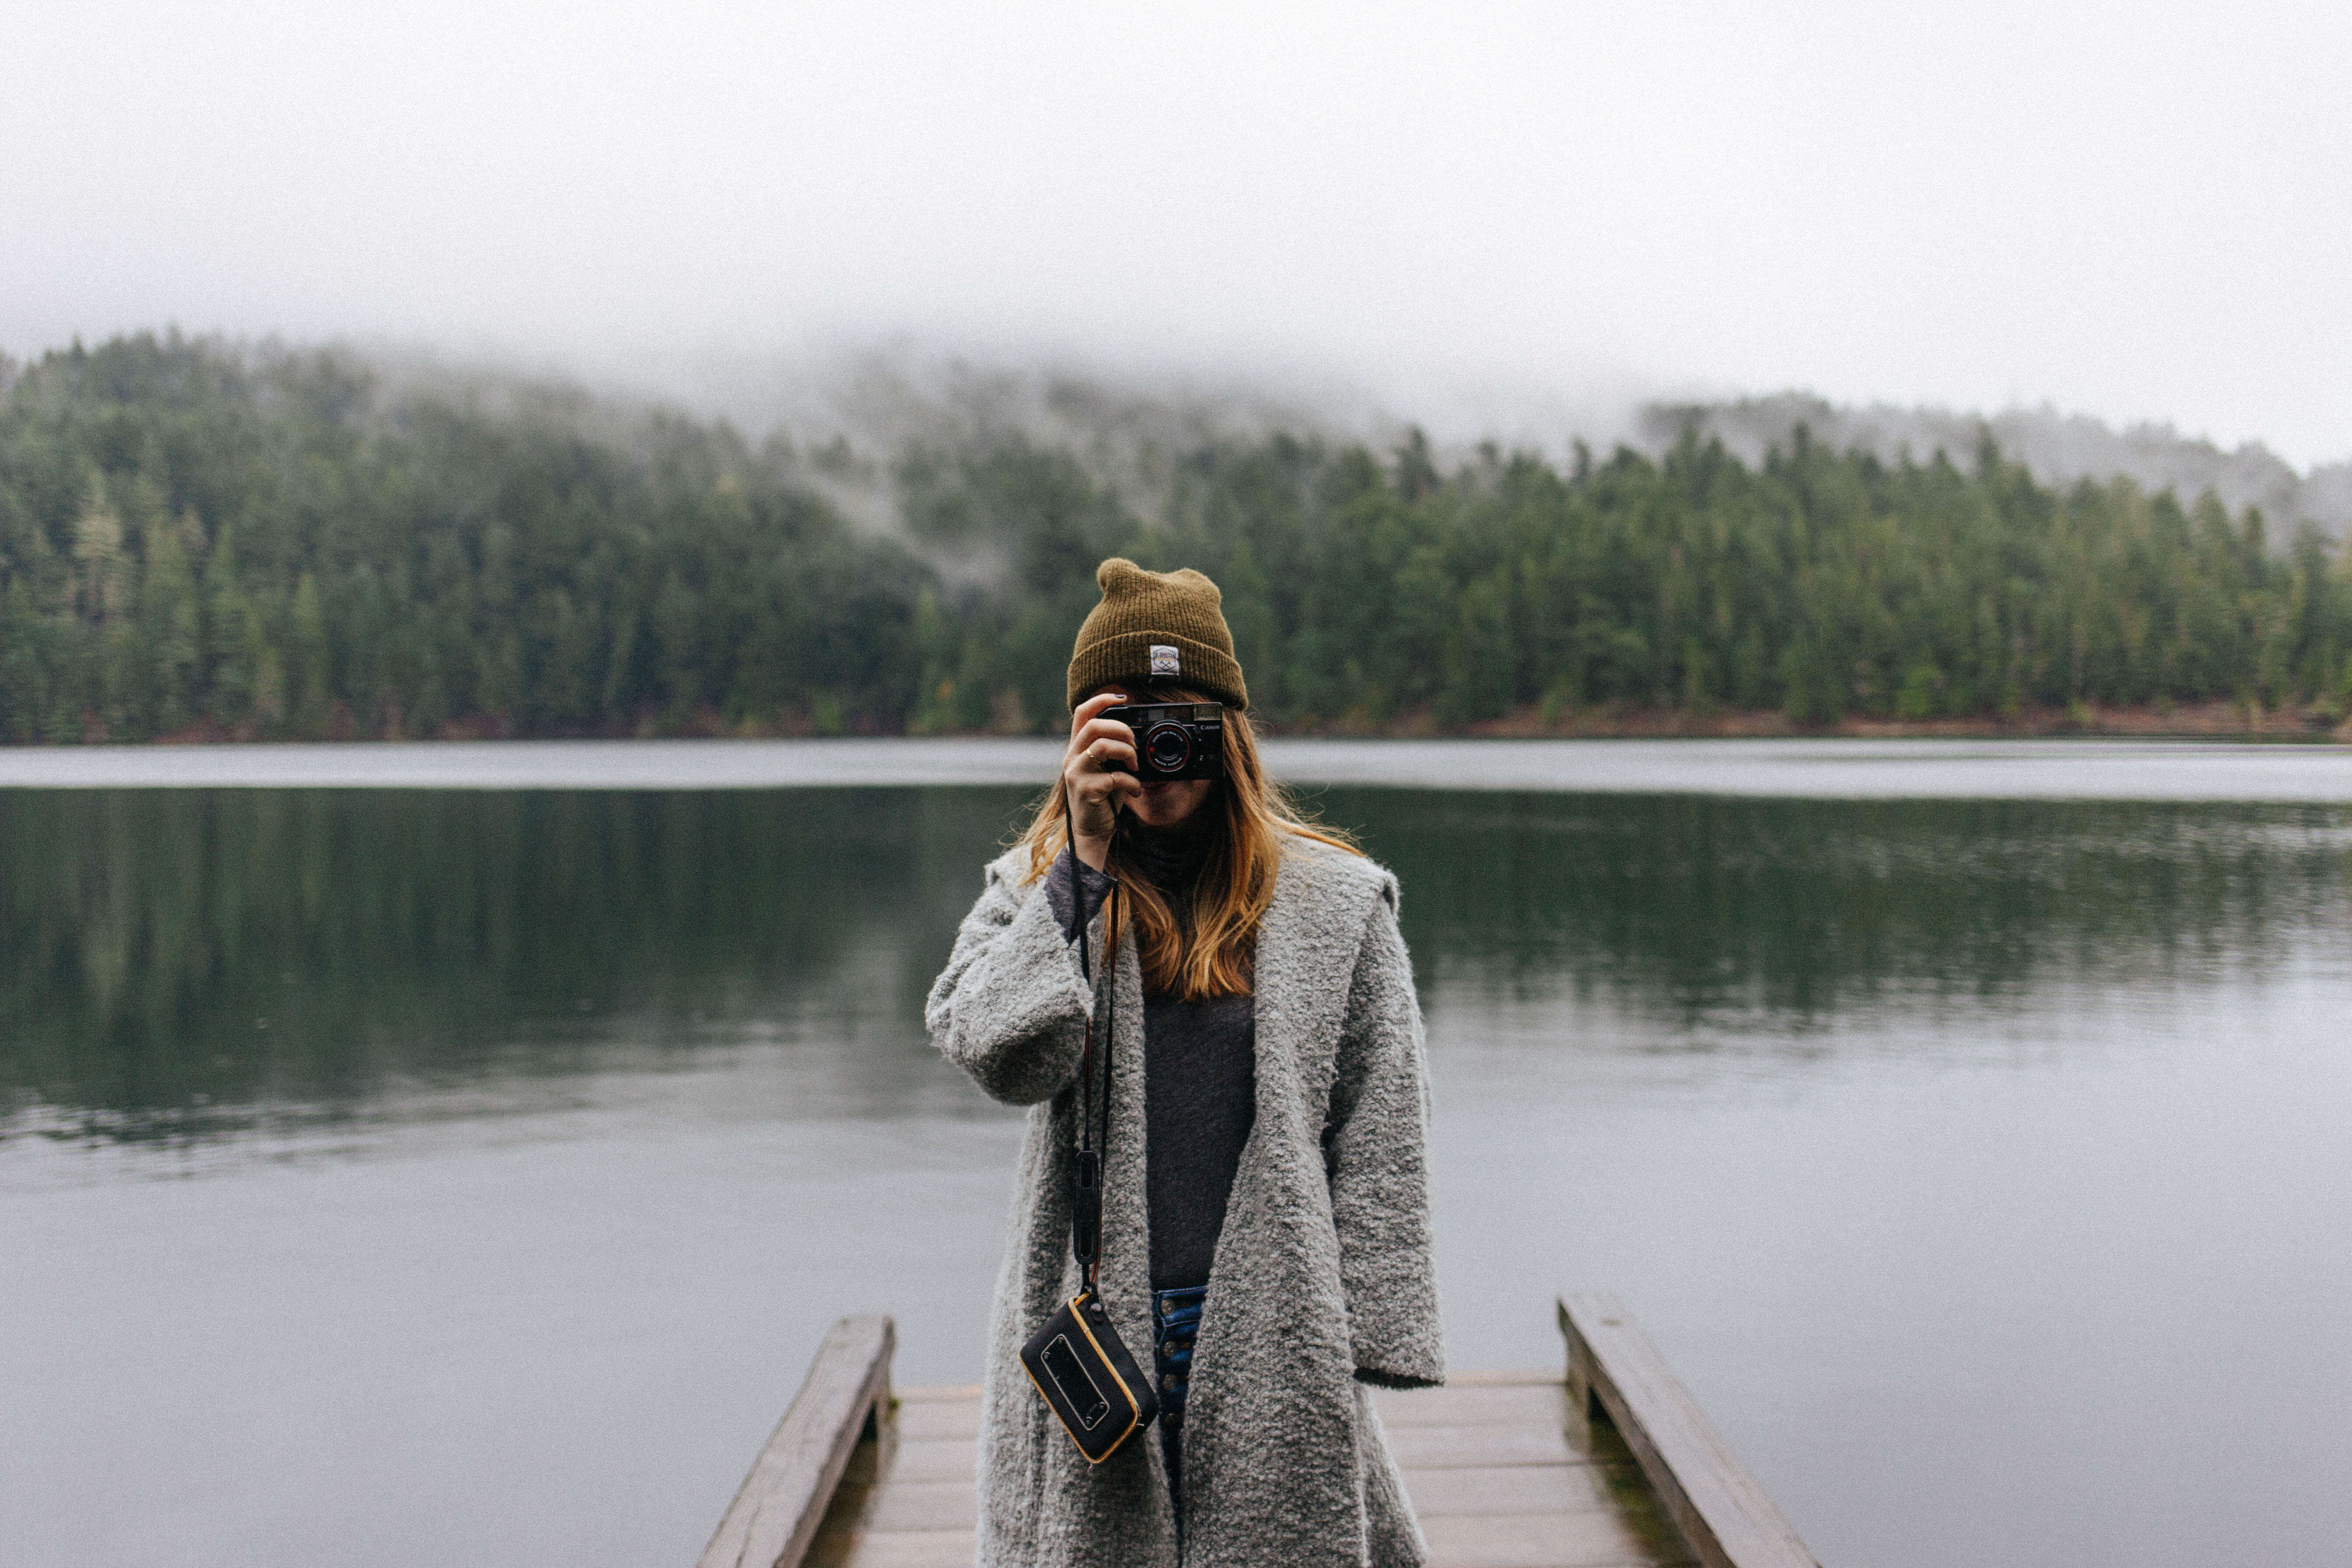 Photo of woman taking a picture with camera pointed at screen